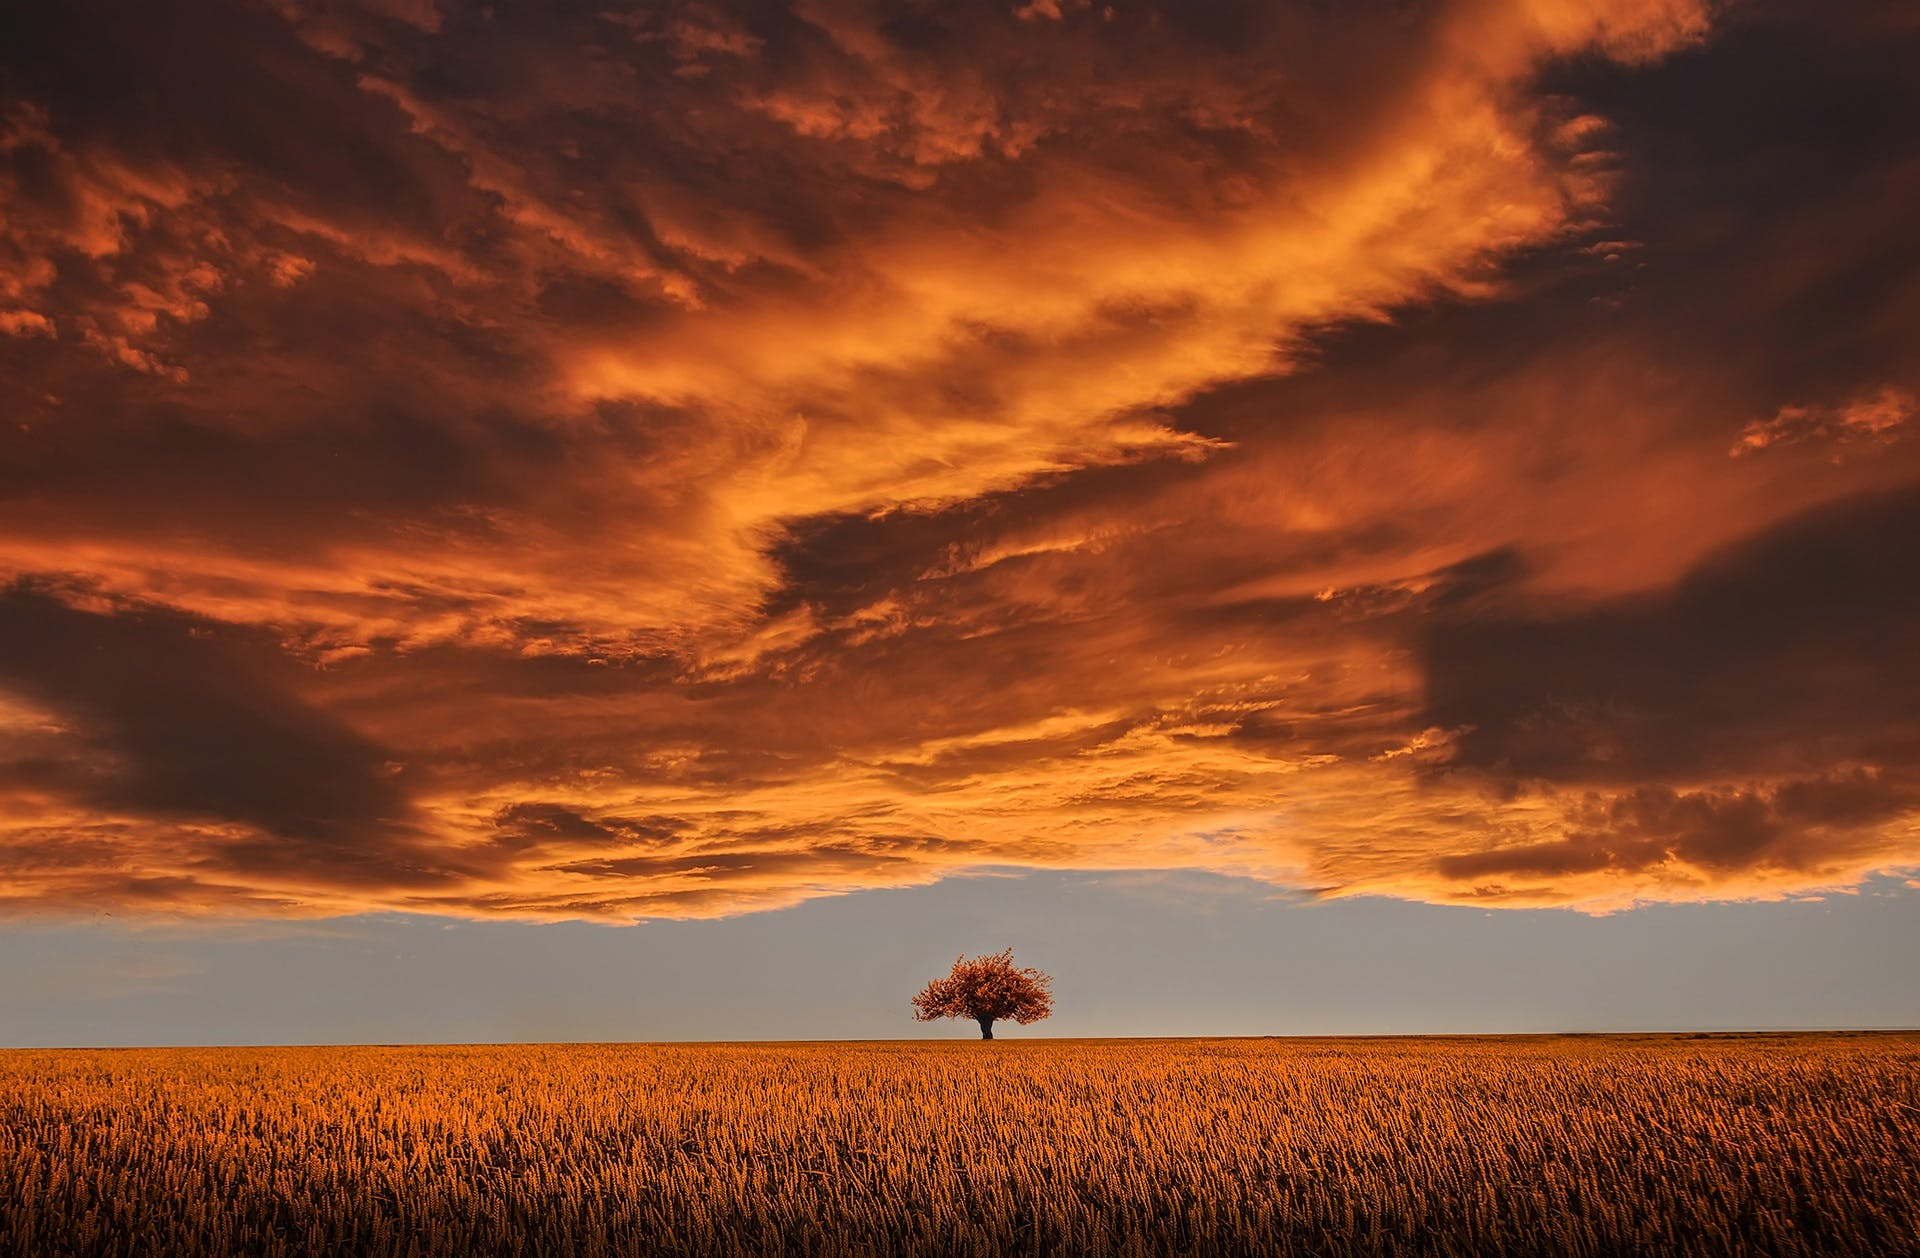 Brown Leafed Tree on Open Field Under White Clouds and Blue Sky